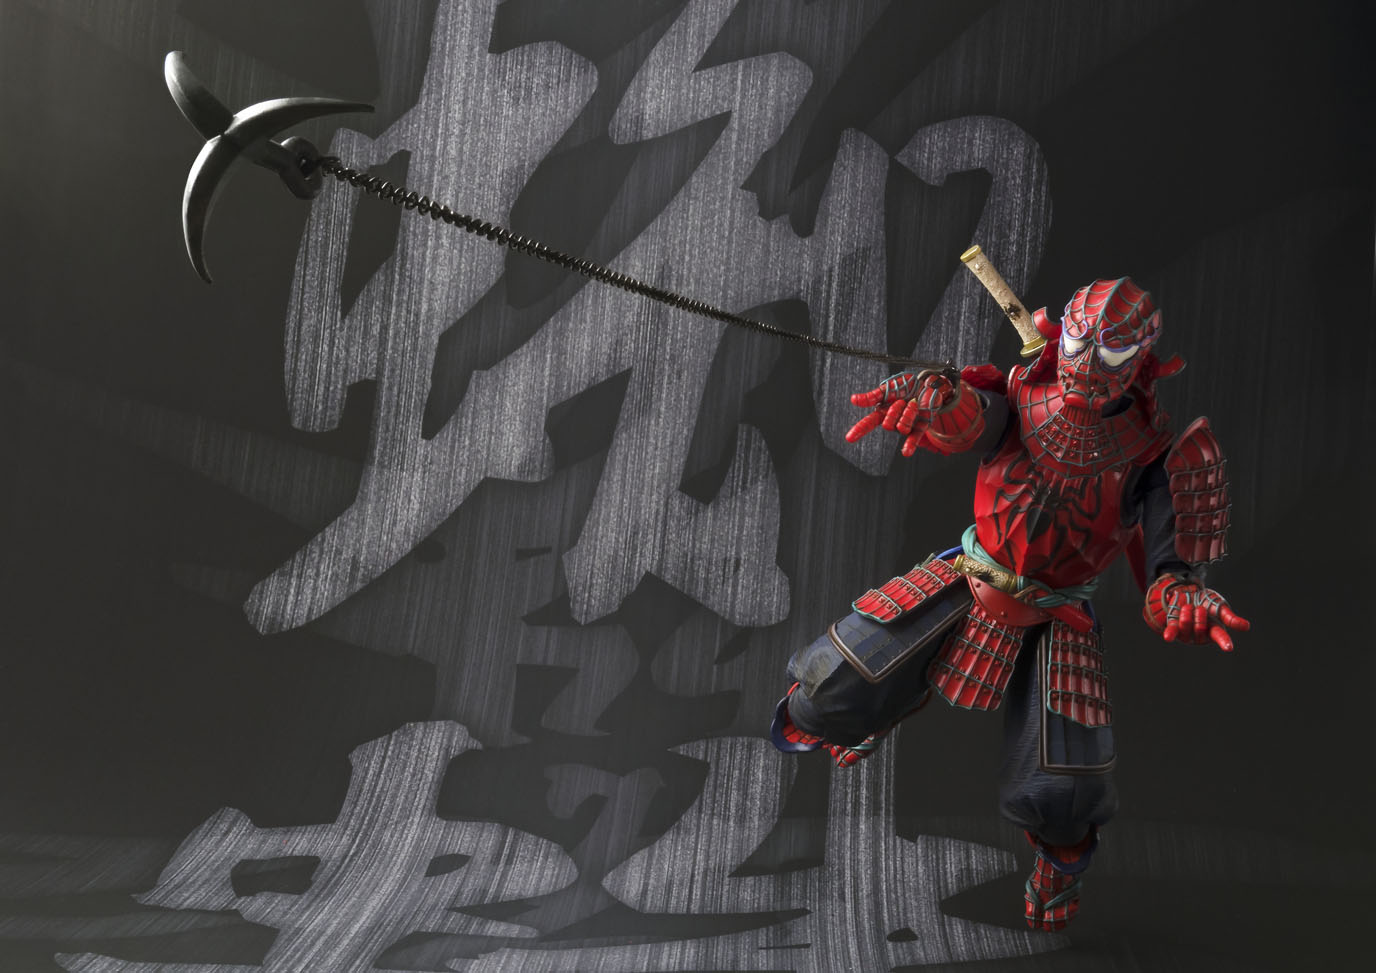 Bluefin Announces Forthcoming Release of New Spider-Man Samurai Meisho Manga Realization Figure